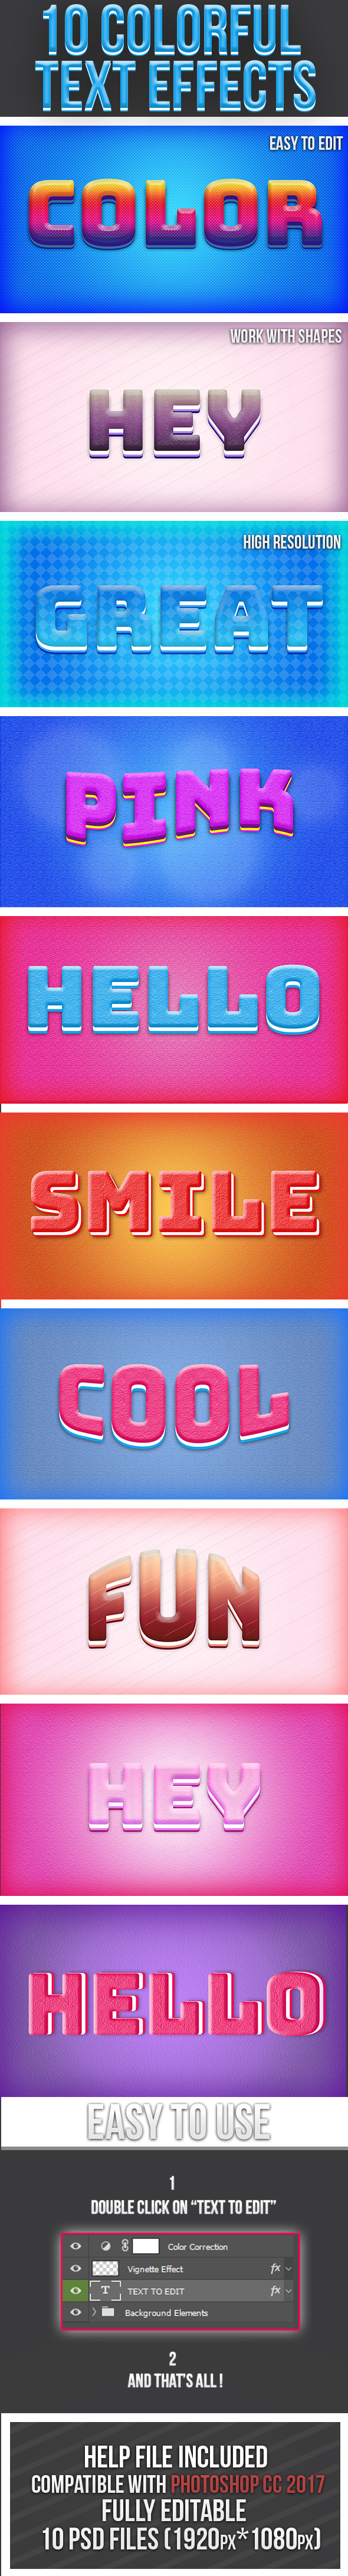 Colorful Text Effects 4 - Text Effects Styles